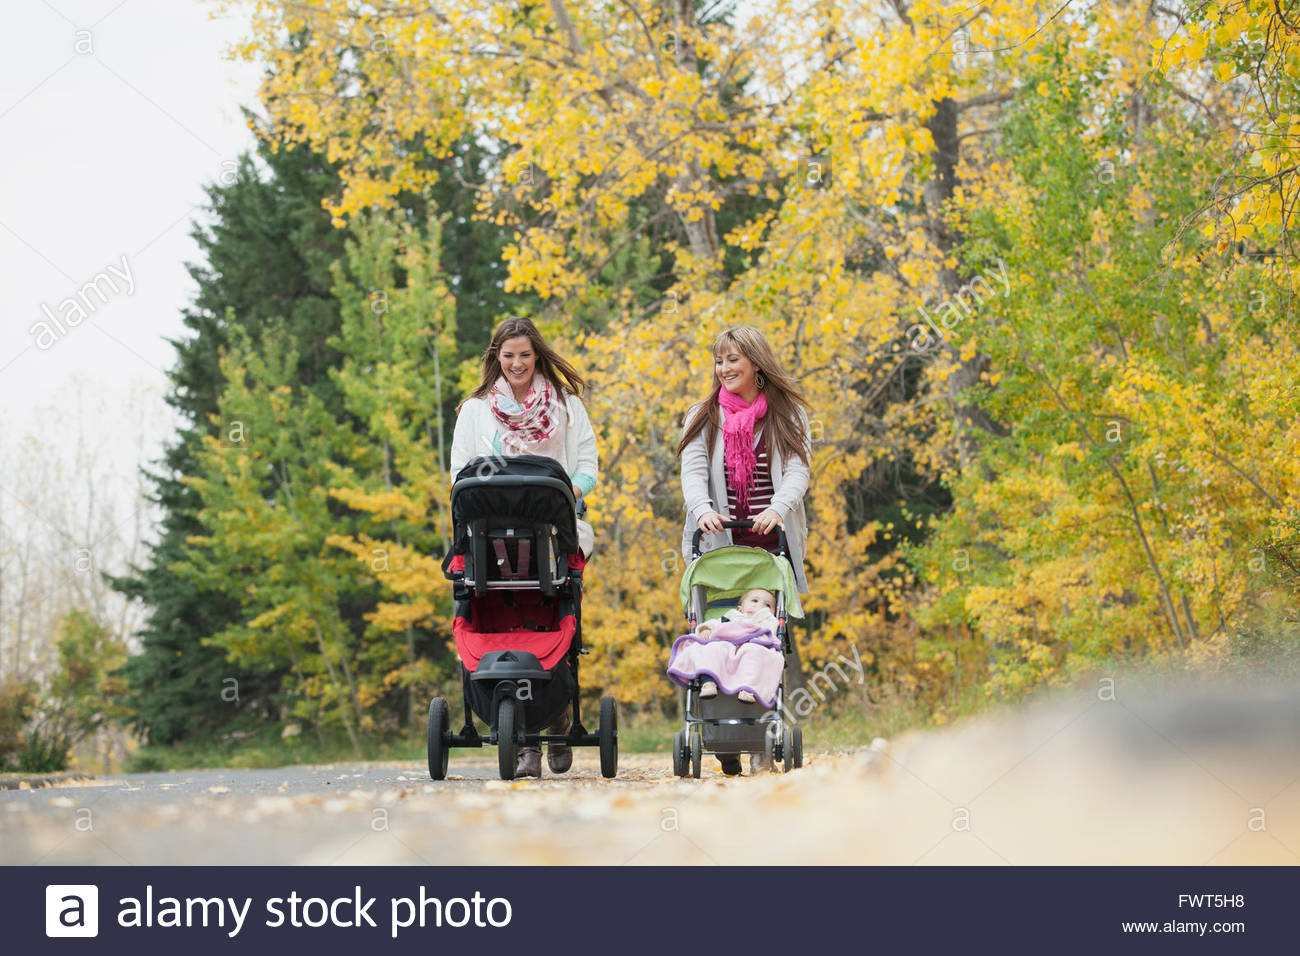 Mothers pushing babies in strollers on pathway - Stock Image